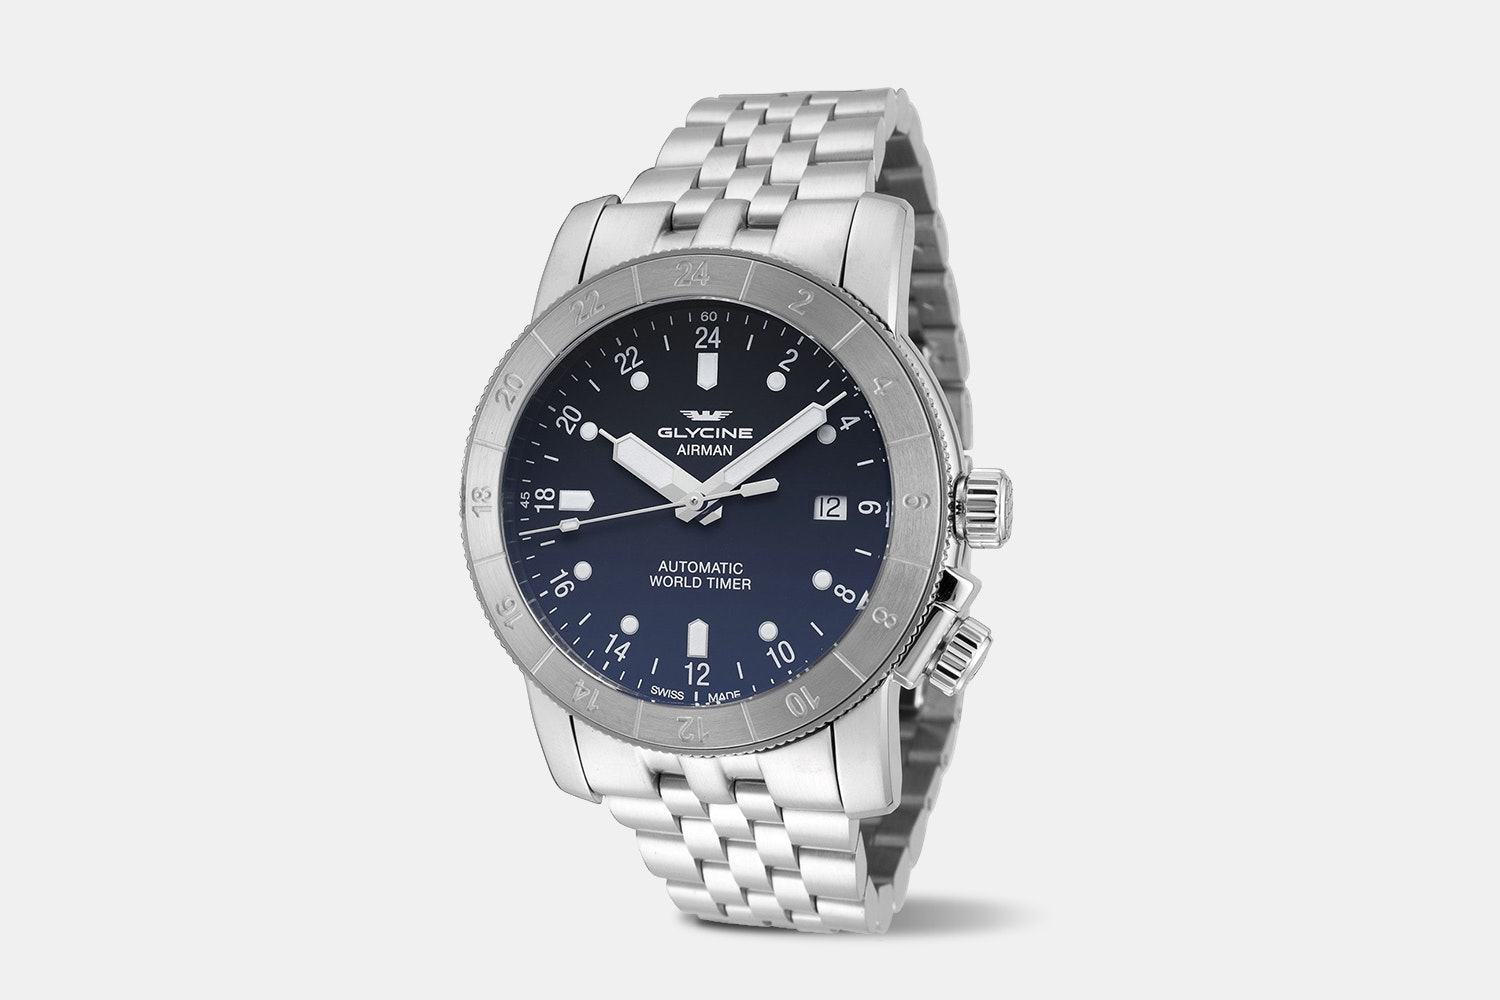 Airman 42 - GL0068 | Blue & Black Dial, Stainless ST